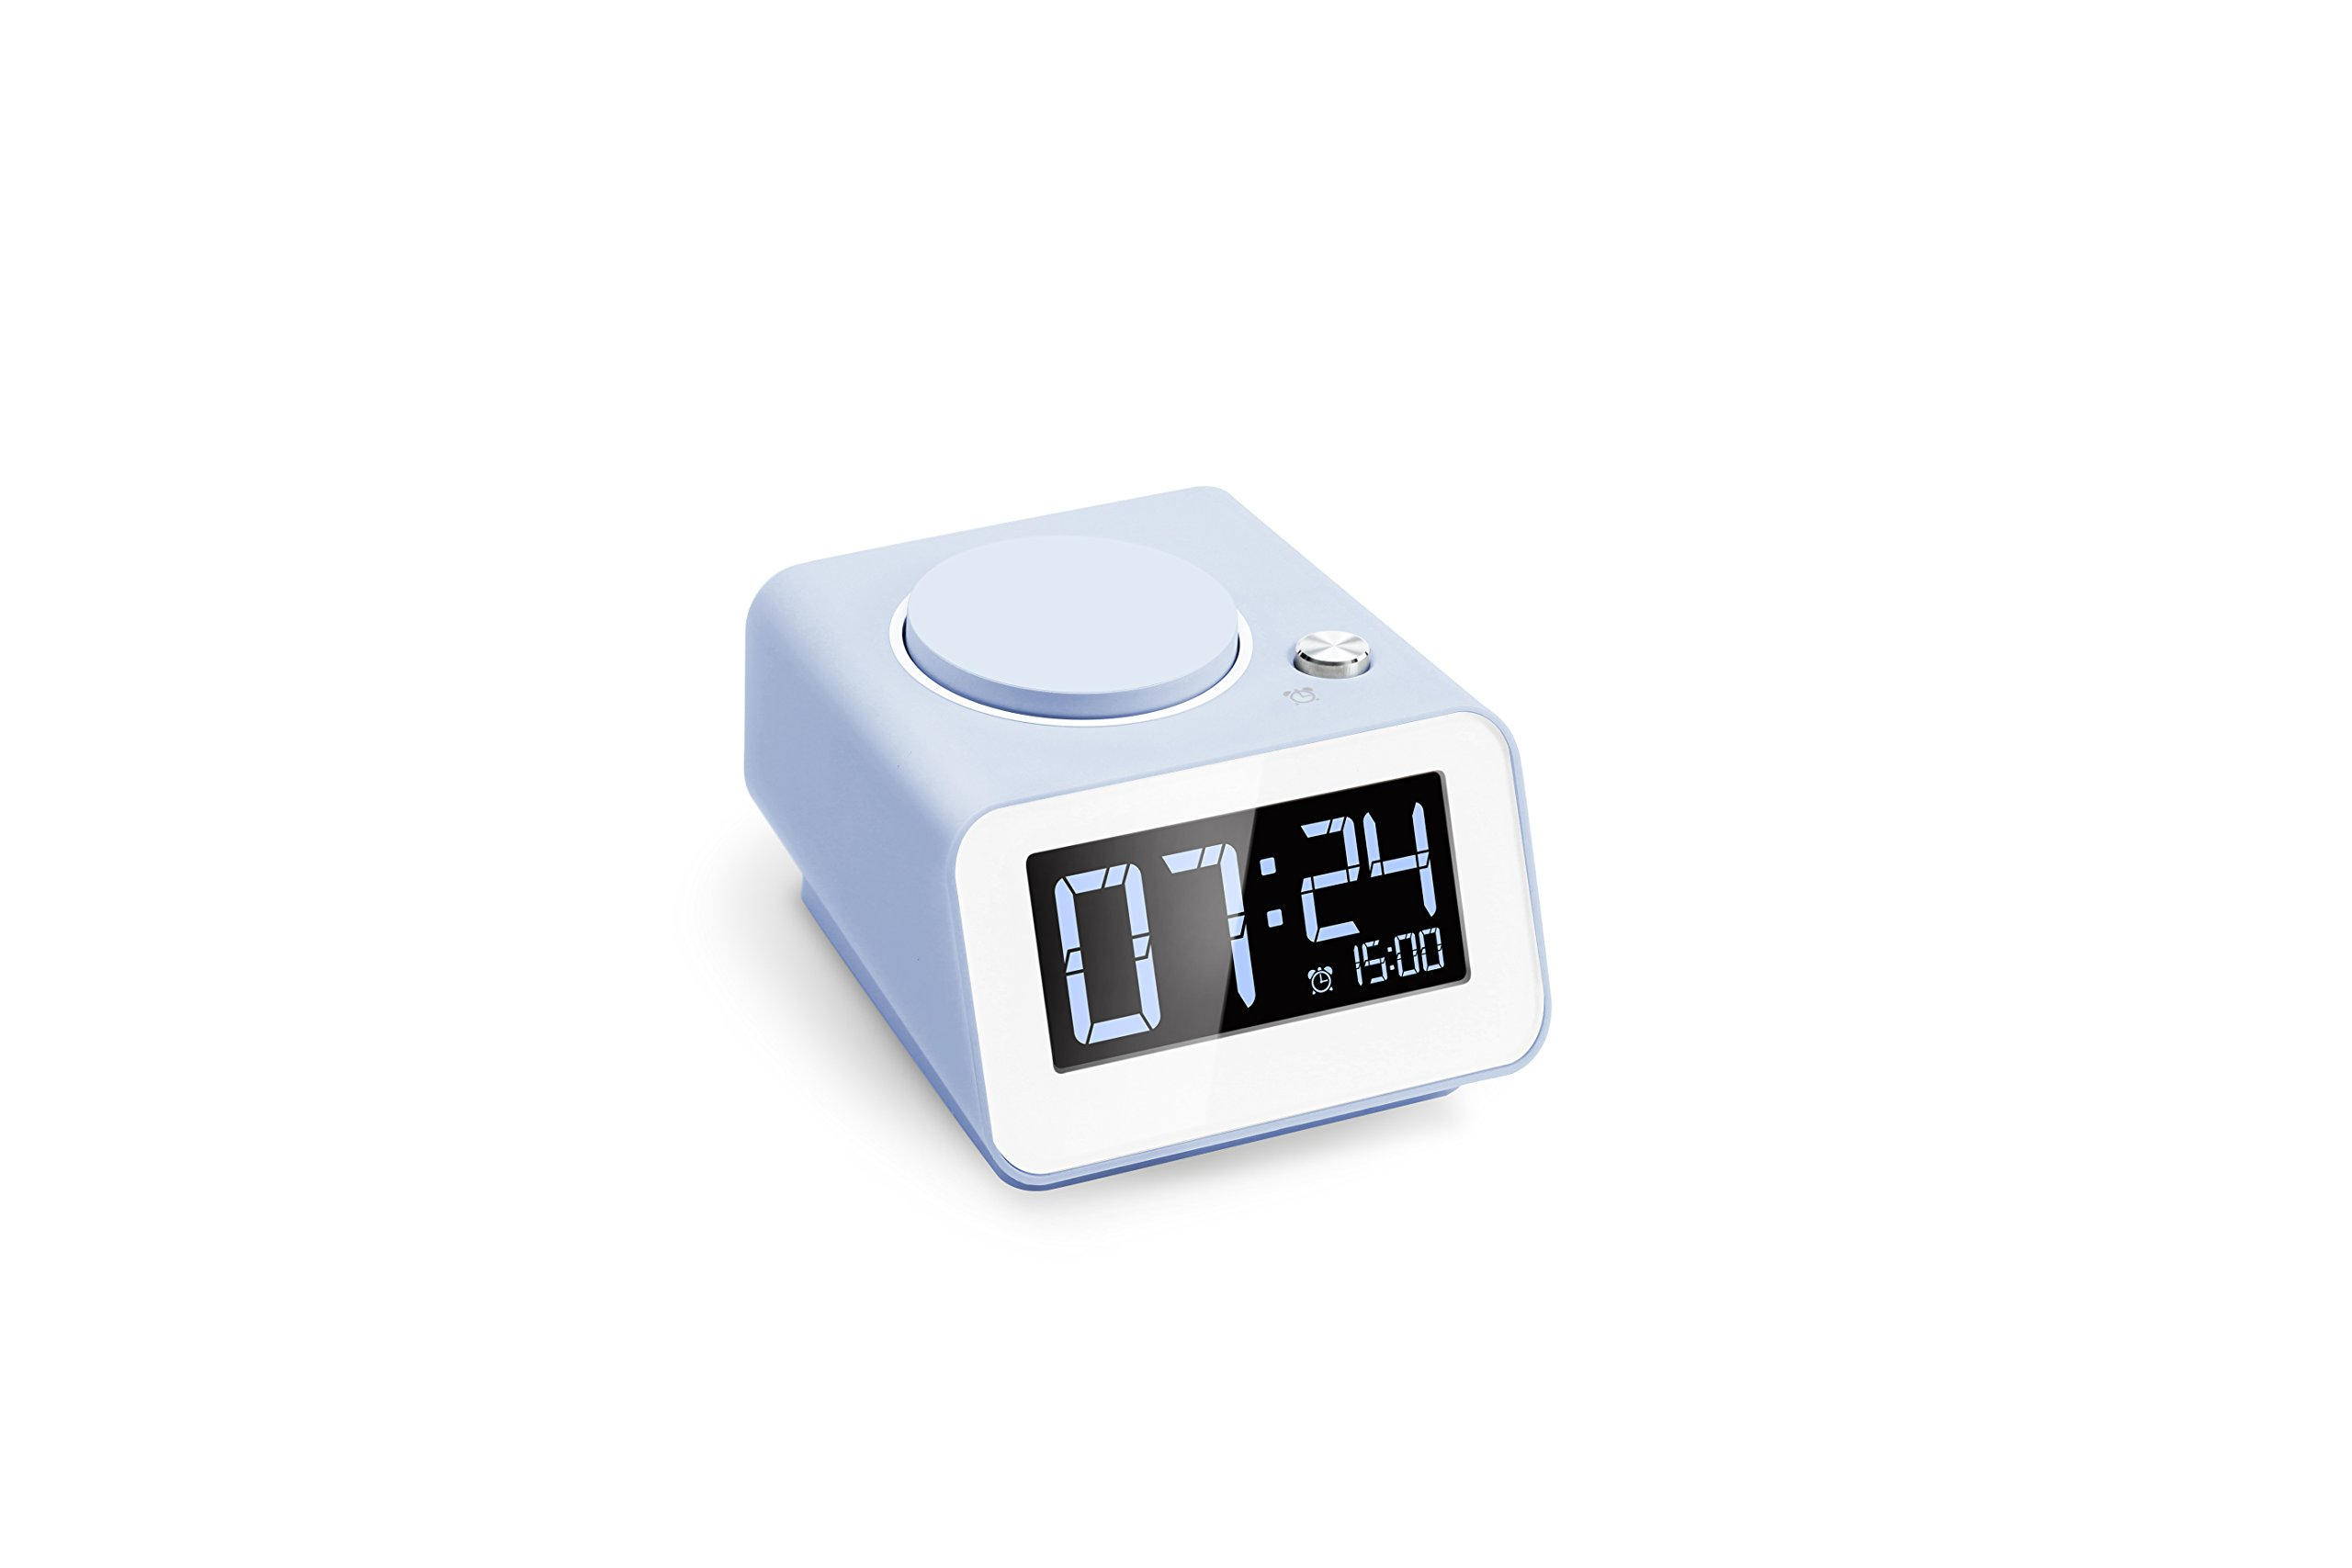 Homtime C1 Mini Digital Alarm Clock with Dual USB Charging, 4 Level Dimmable, Battery Backup Function, Perfect for Home, Hotel and Office, Blue